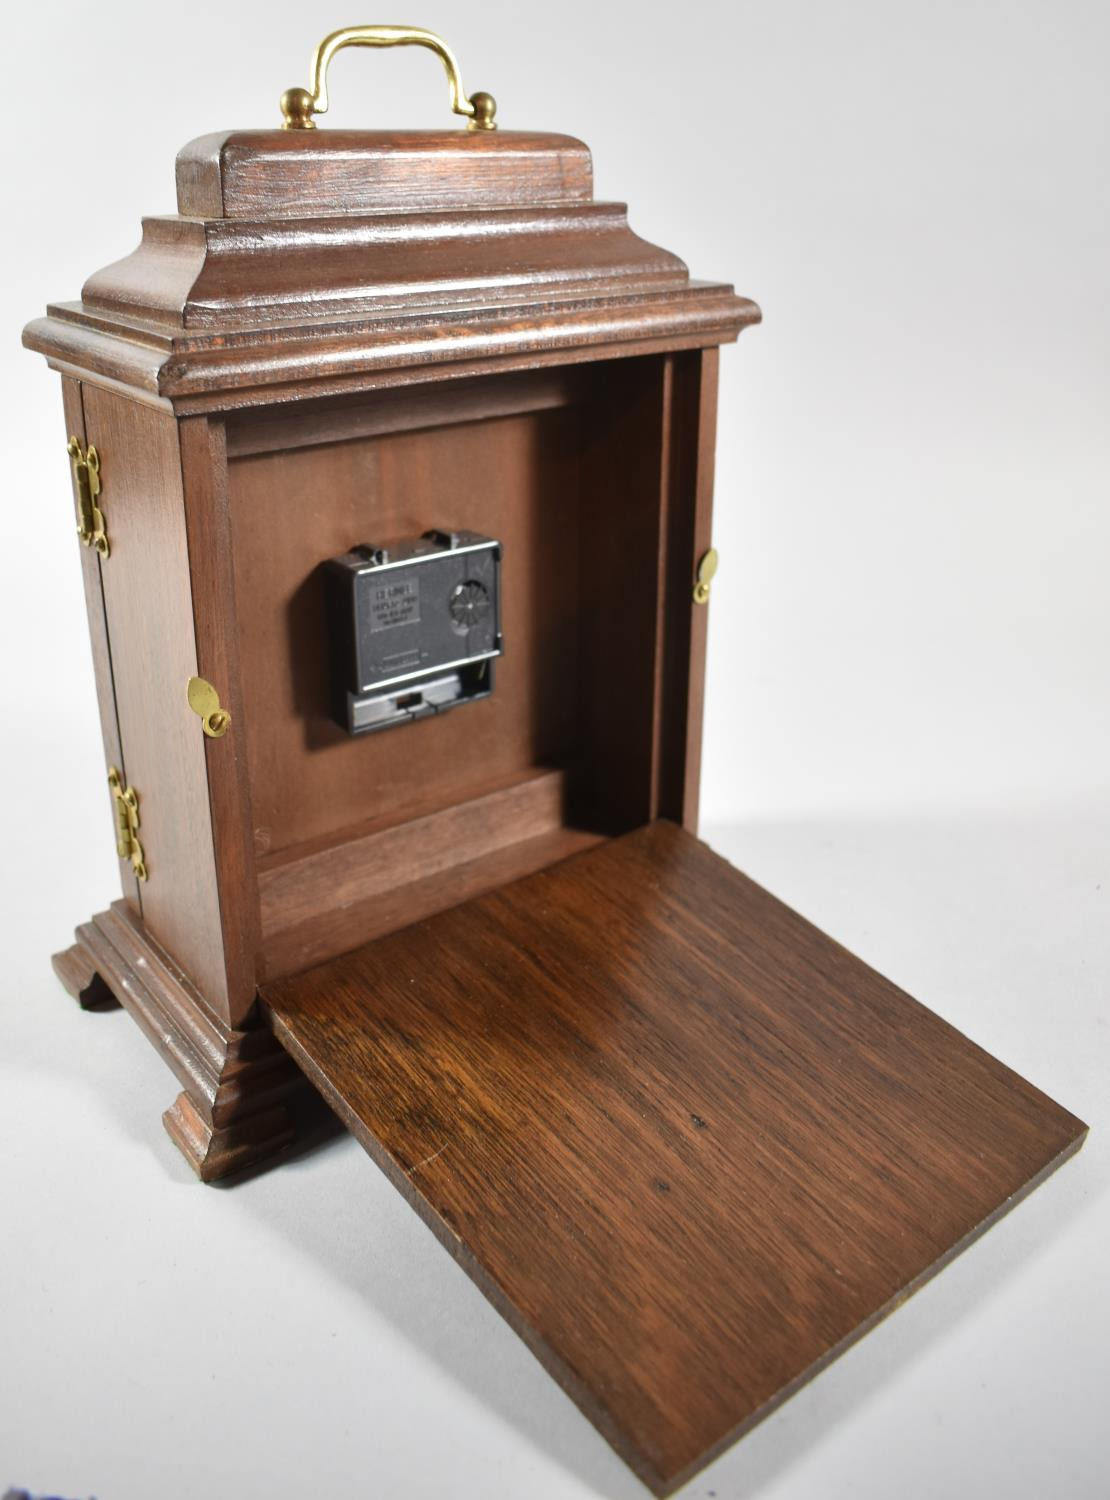 A Mid/Late 20th Century Mahogany Cased Bracket Clock with Battery Movement, 28cm high - Image 2 of 2